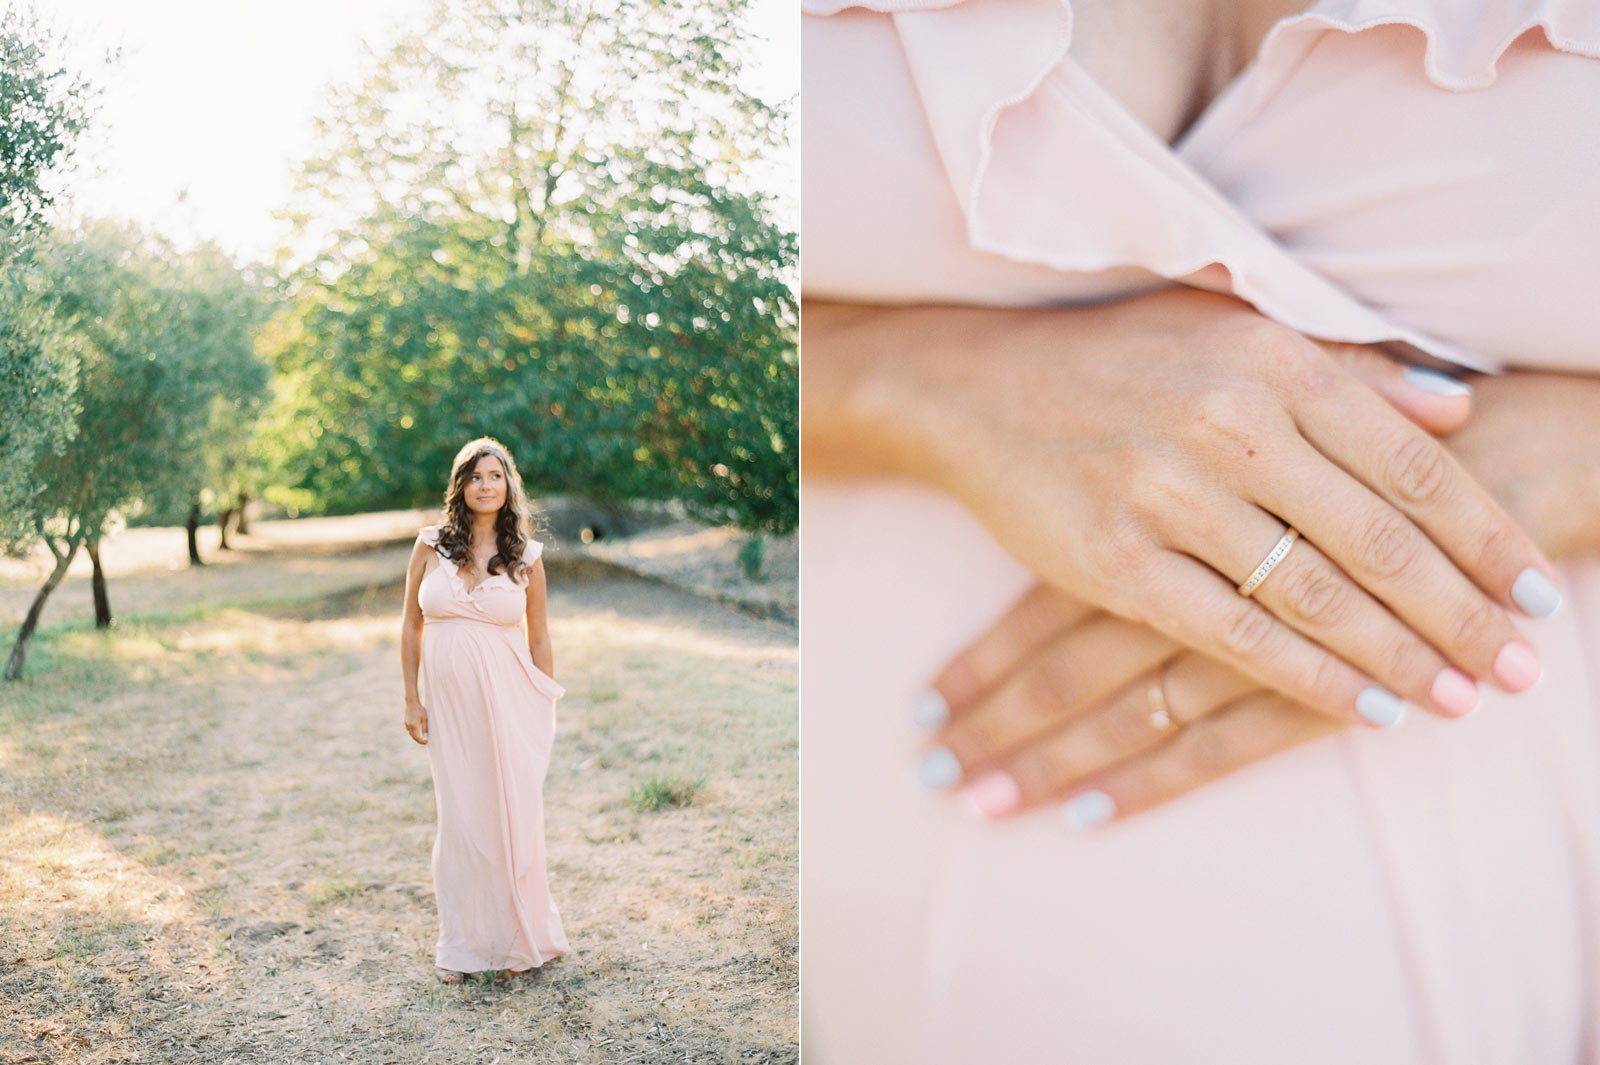 Napa maternity film images